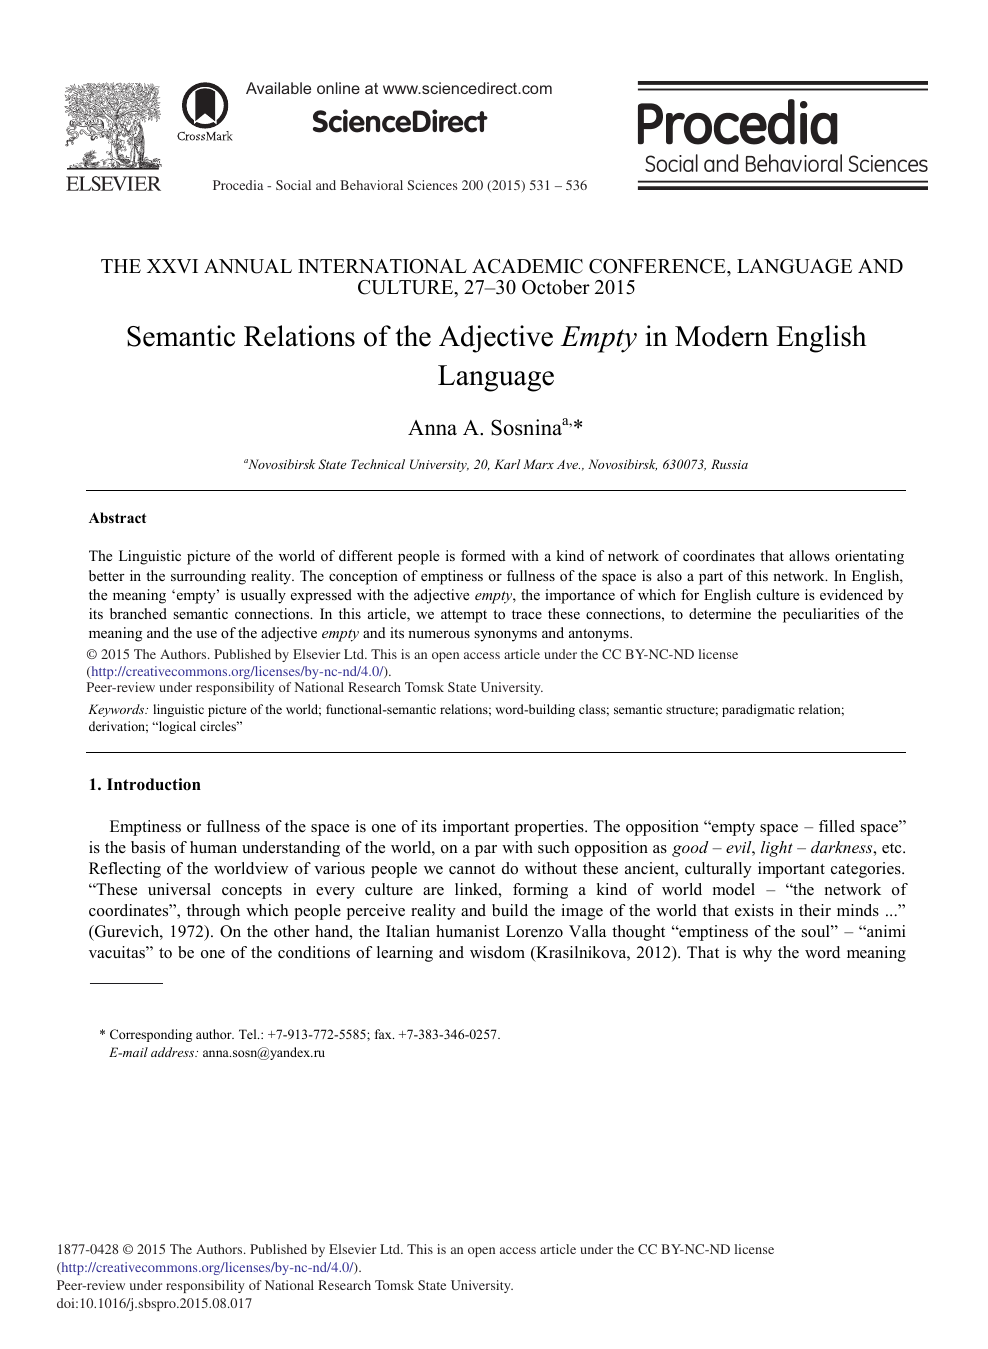 Semantic Relations of the Adjective Empty in Modern English Language